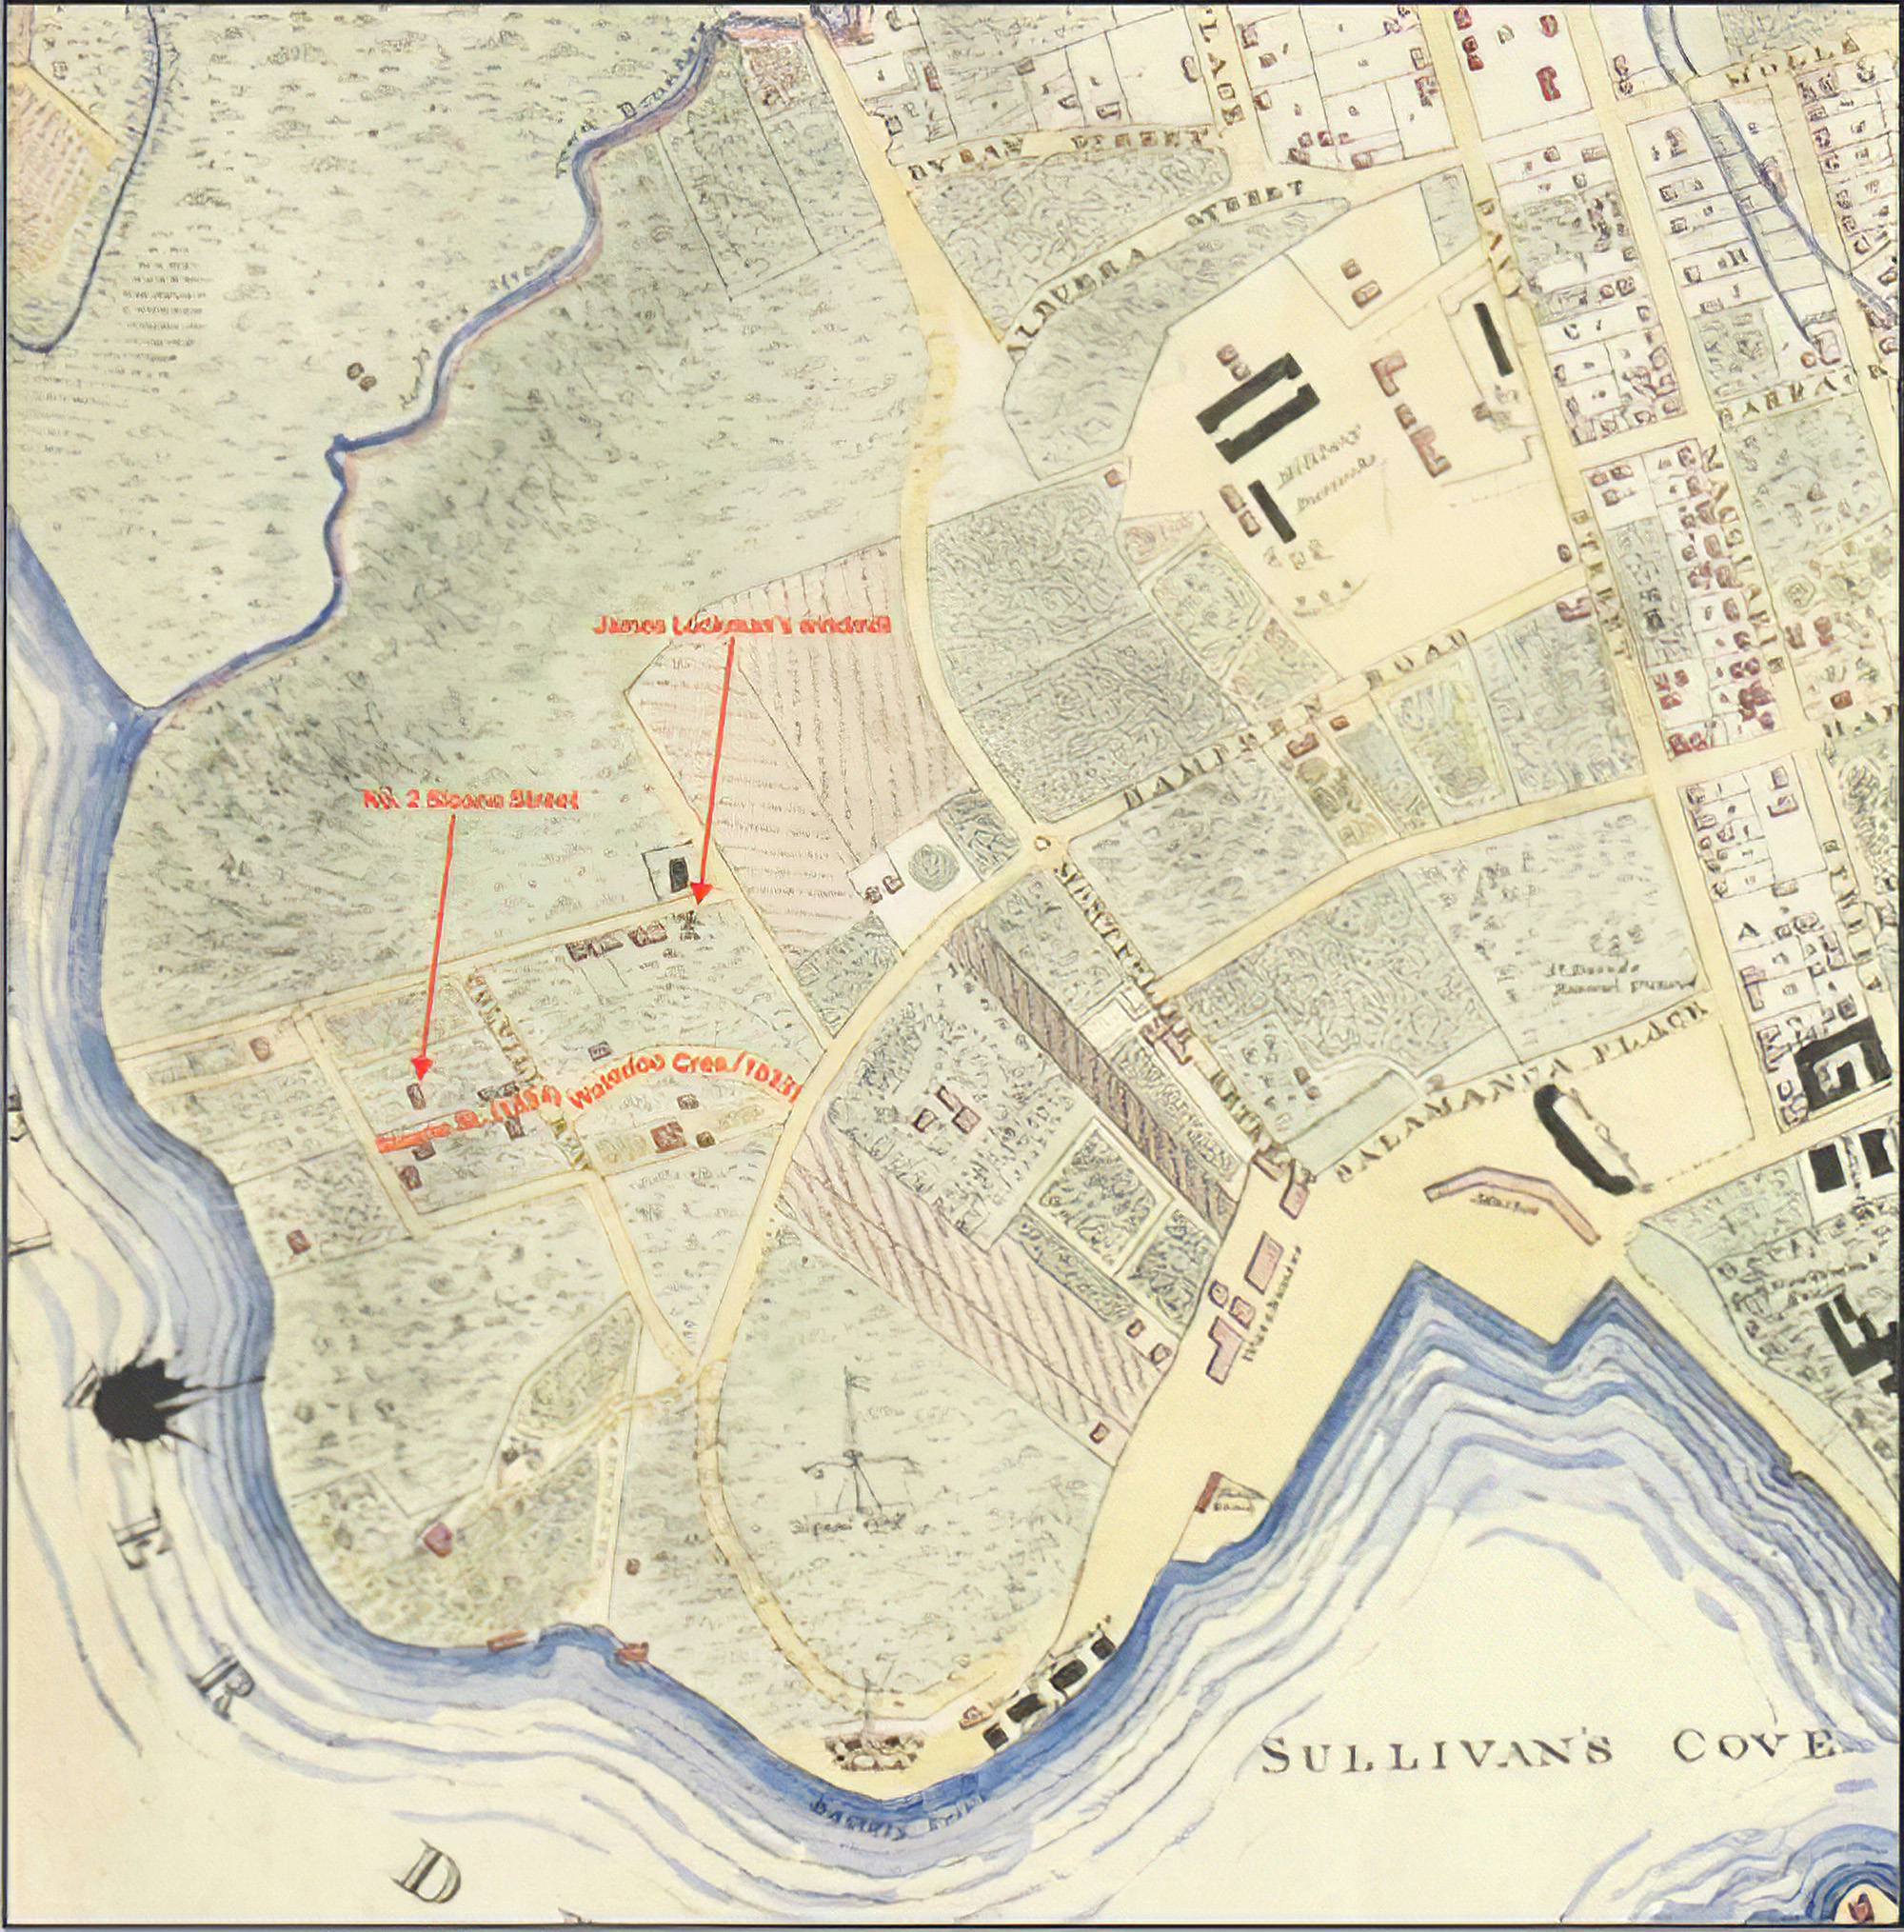 Circa 1838-39 colour rendering of George Frankland's original 1836 map